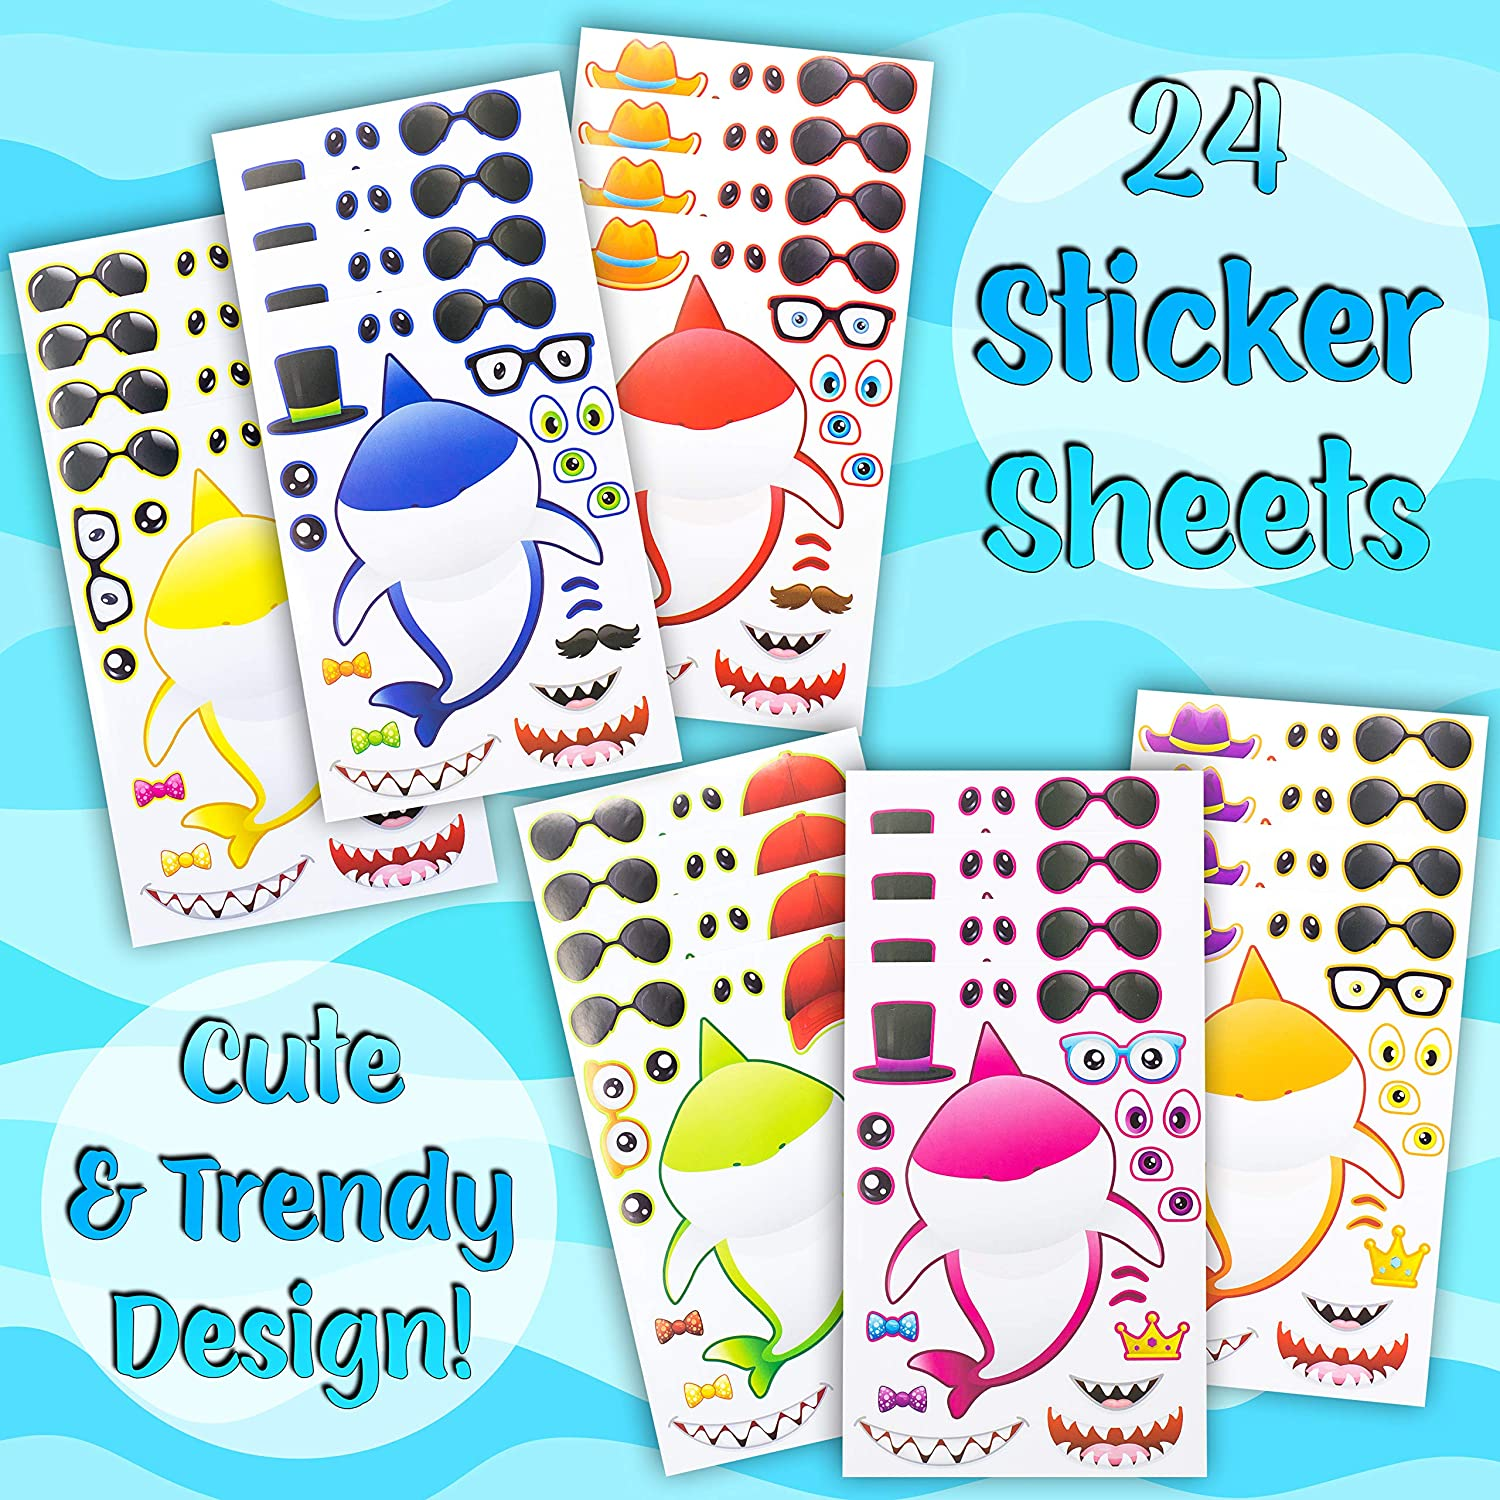 Let Your Kids Get Creative /& Design Their Favorite Shark Stickers 24 Make A Shark Pup Stickers for Kids Decorations Great for Birthday Party Favors Prizes Fun Kids Craft Activity